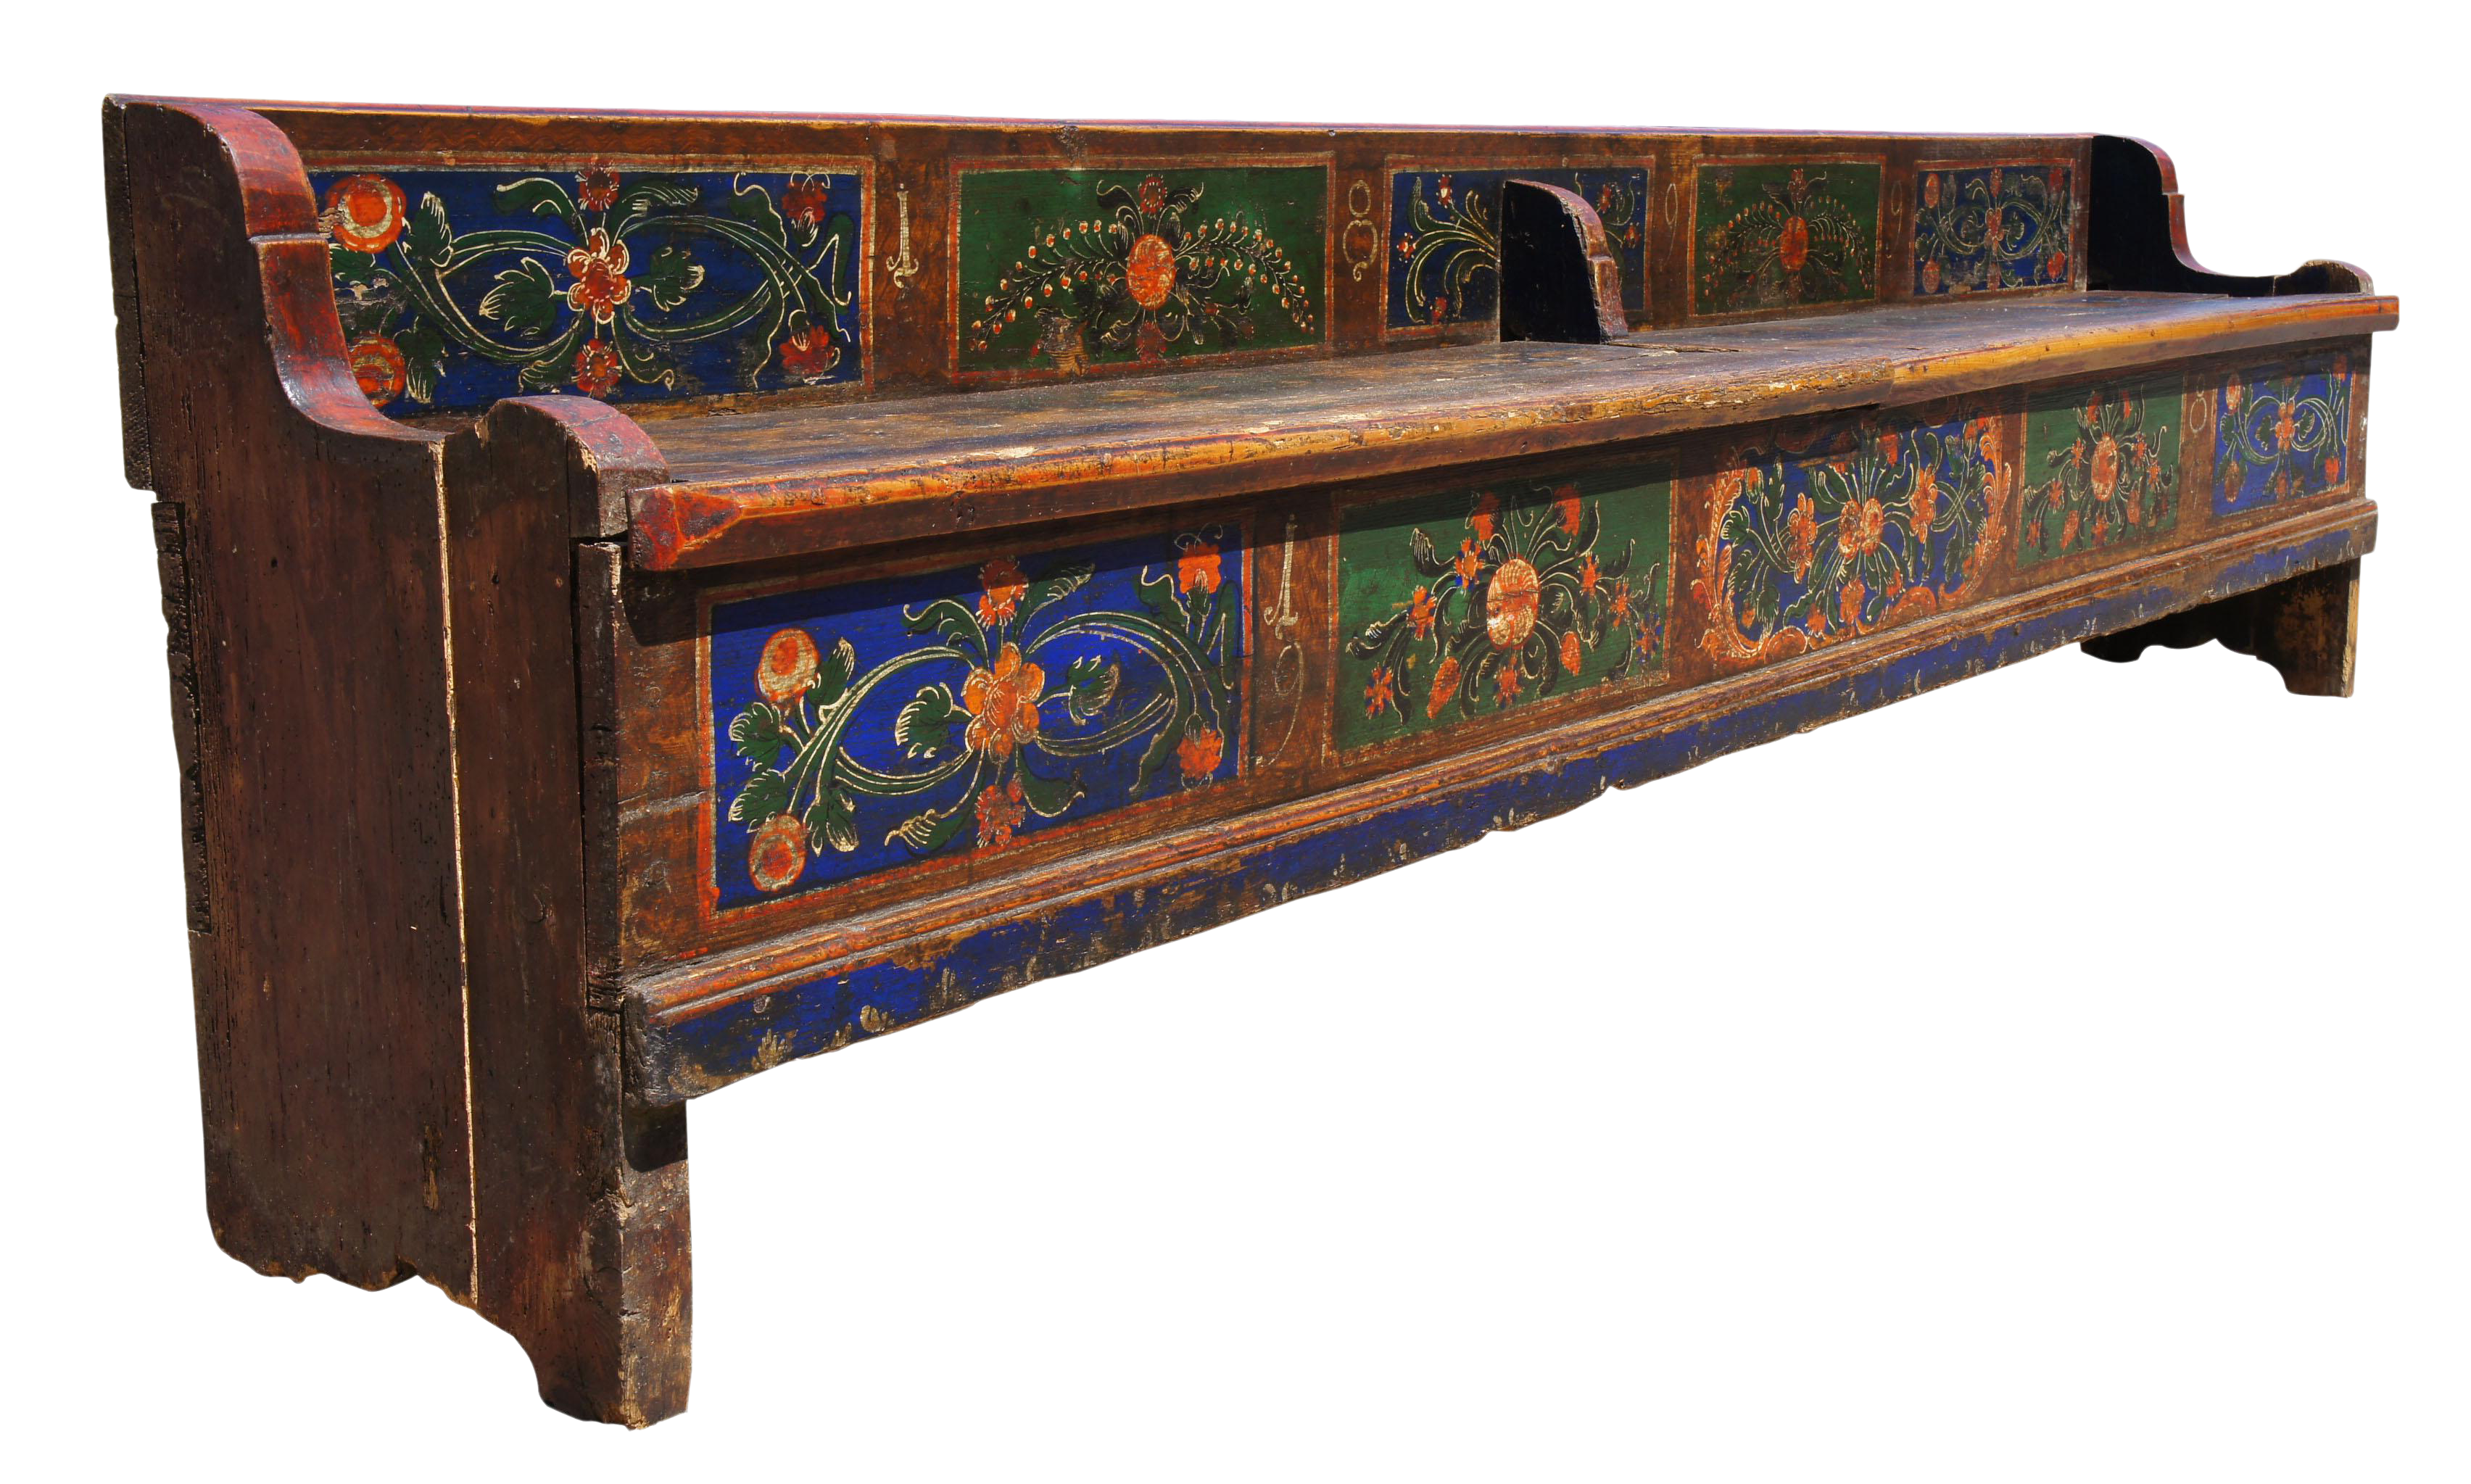 Pleasing 1899 Antique Hungarian Folk Art Pine Storage Bench Hand Painted Seat Evergreenethics Interior Chair Design Evergreenethicsorg